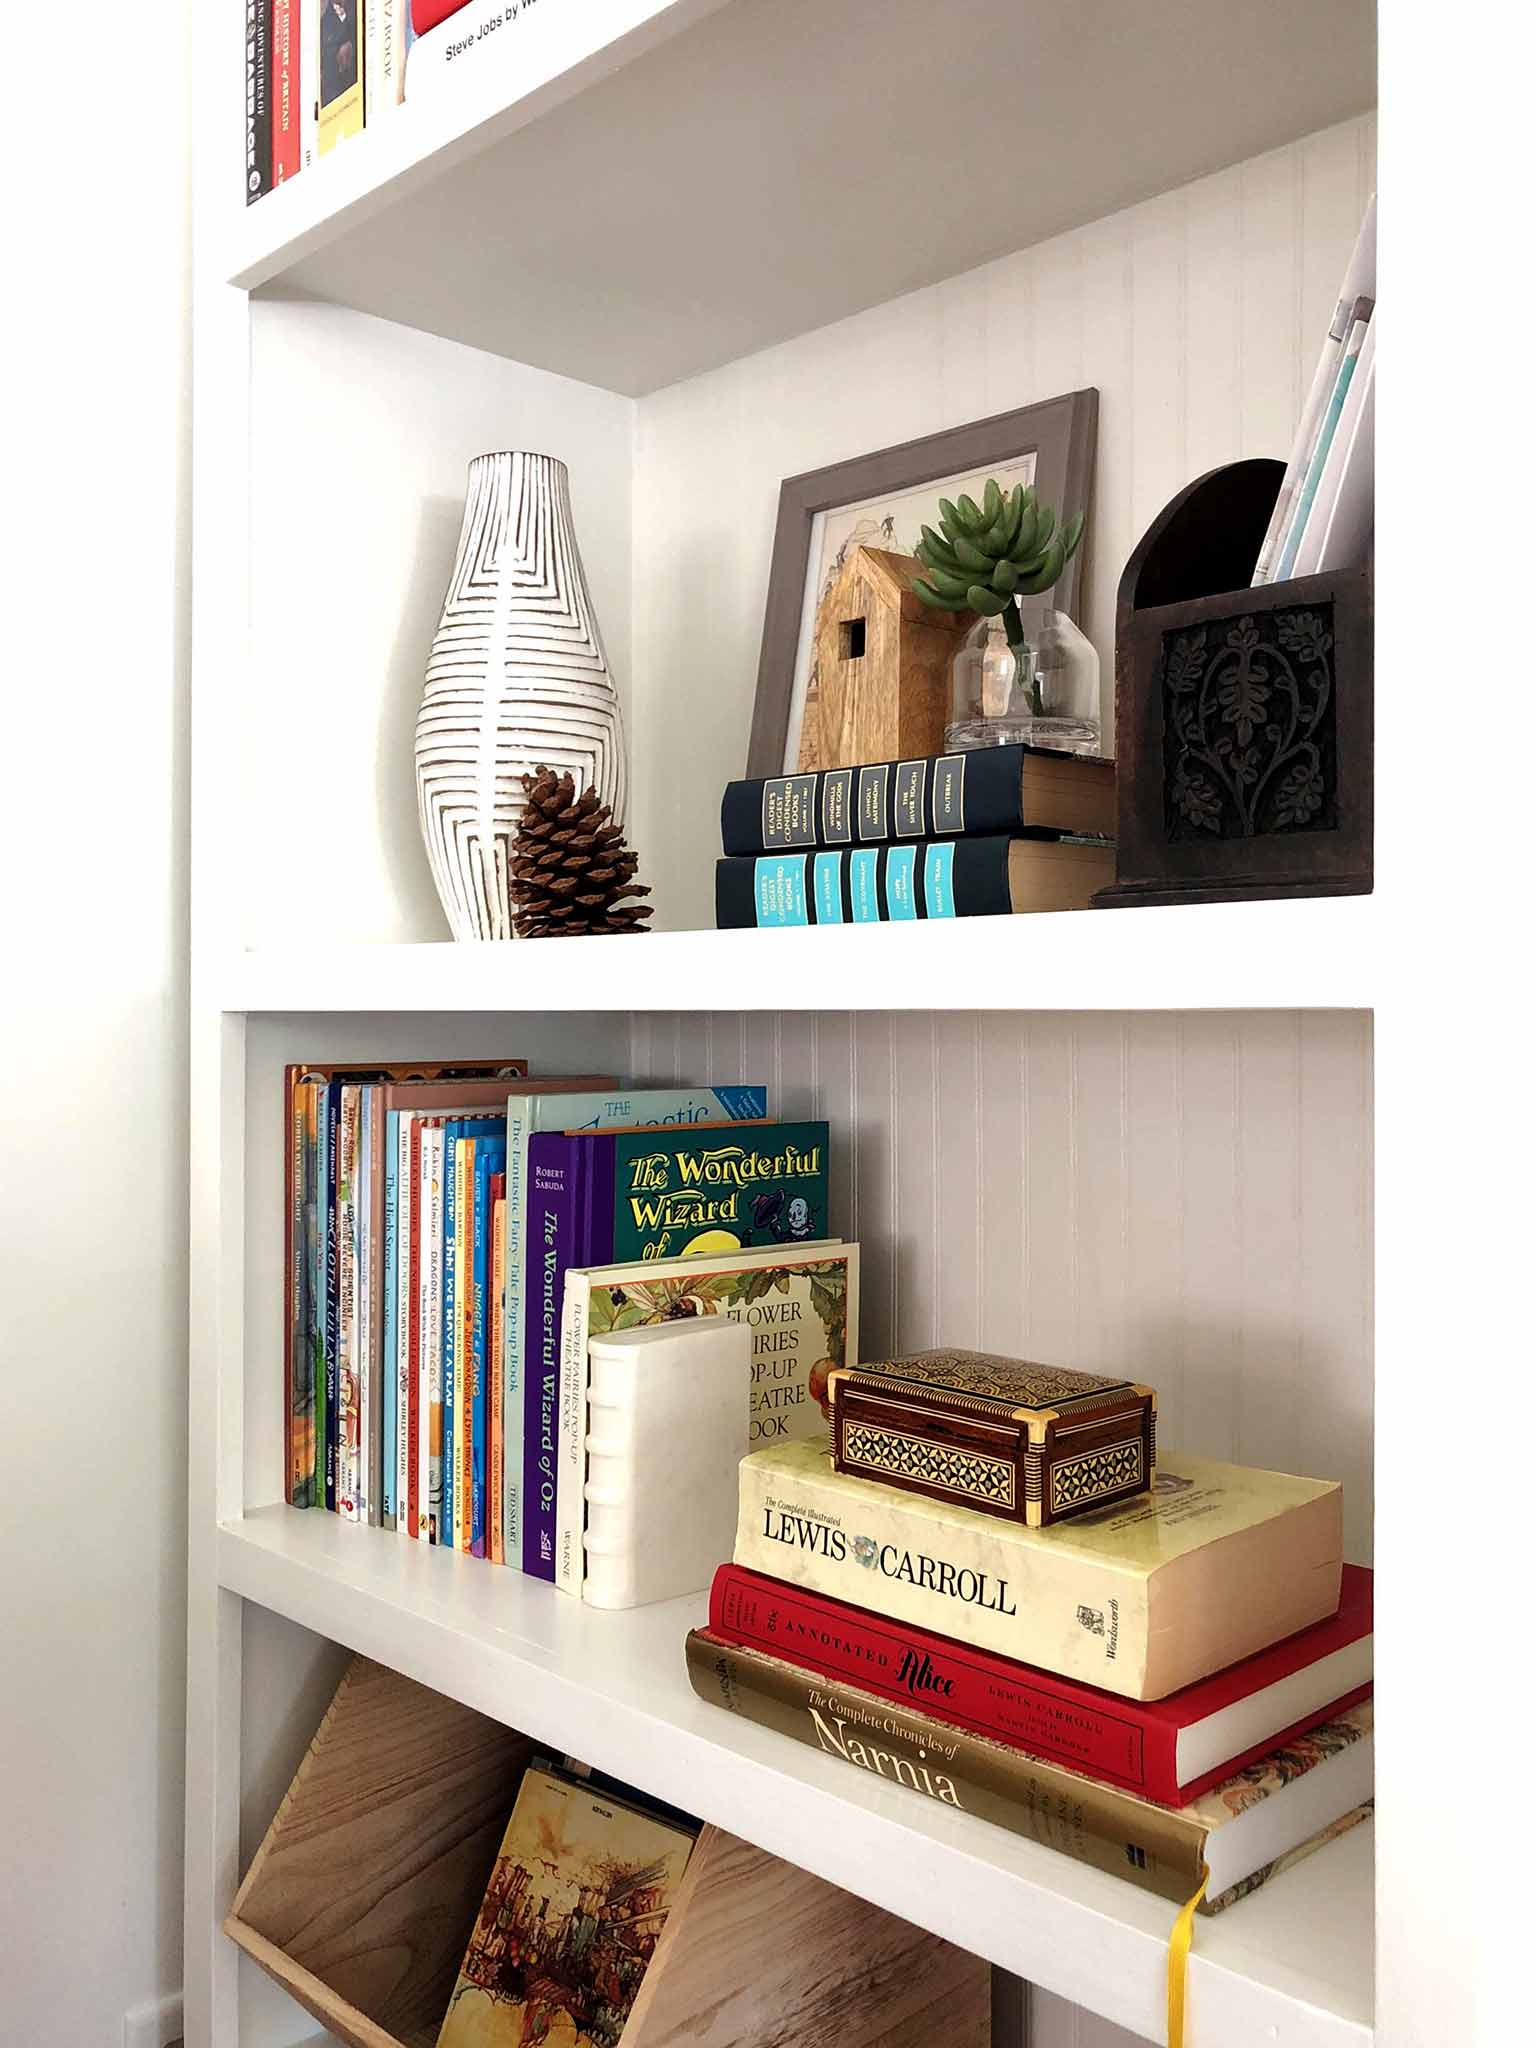 Built-in book shelf - How to Declutter, Organize and Style Kids' Books - That Homebird Life Blog